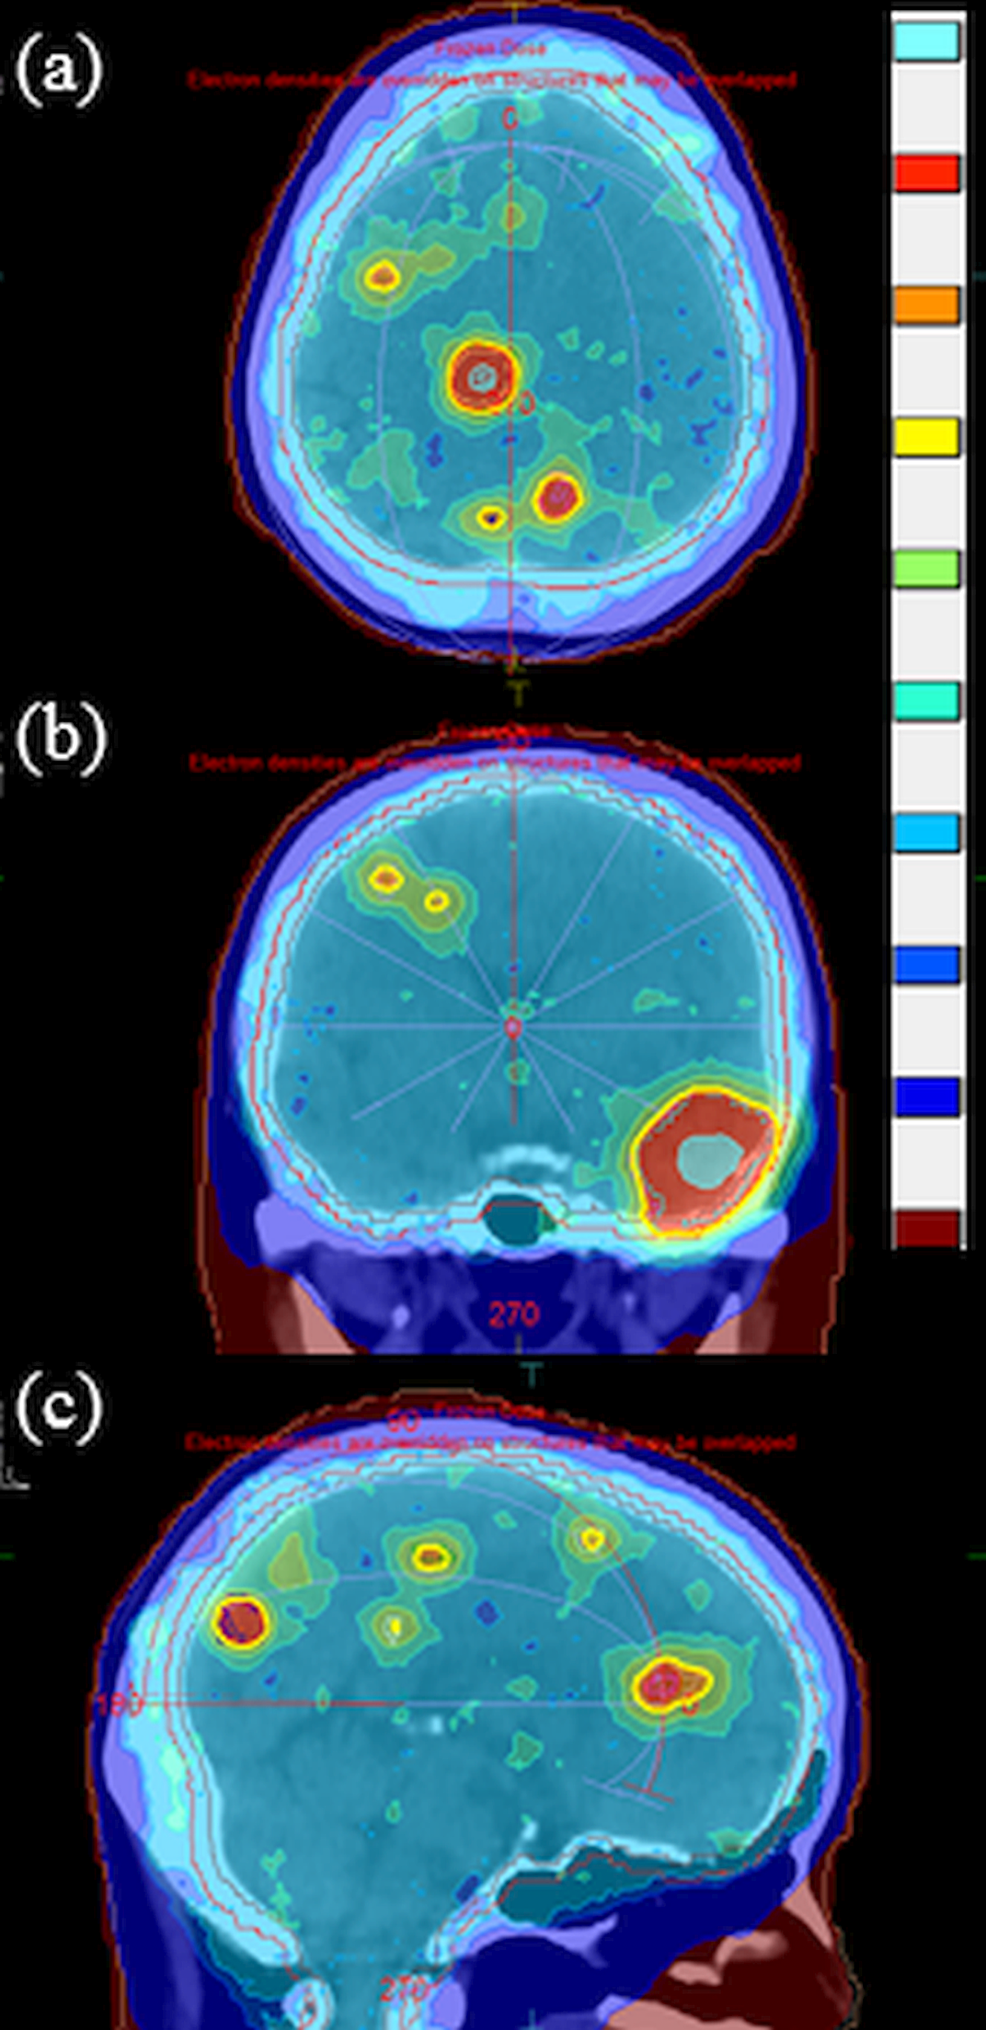 Dose-distributions-on-(a)-an-axial-plane,-(b)-a-coronal-plane,-and-(c)-a-sagittal-plane-for-the-16-brain-metastases.-The-color-bar-(from-top-to-bottom)-shows-dose-thresholds-of-80,-57,-54,-52.5,-46,-41.25,-37.5,-35.63,-20,-and-6-Gy.